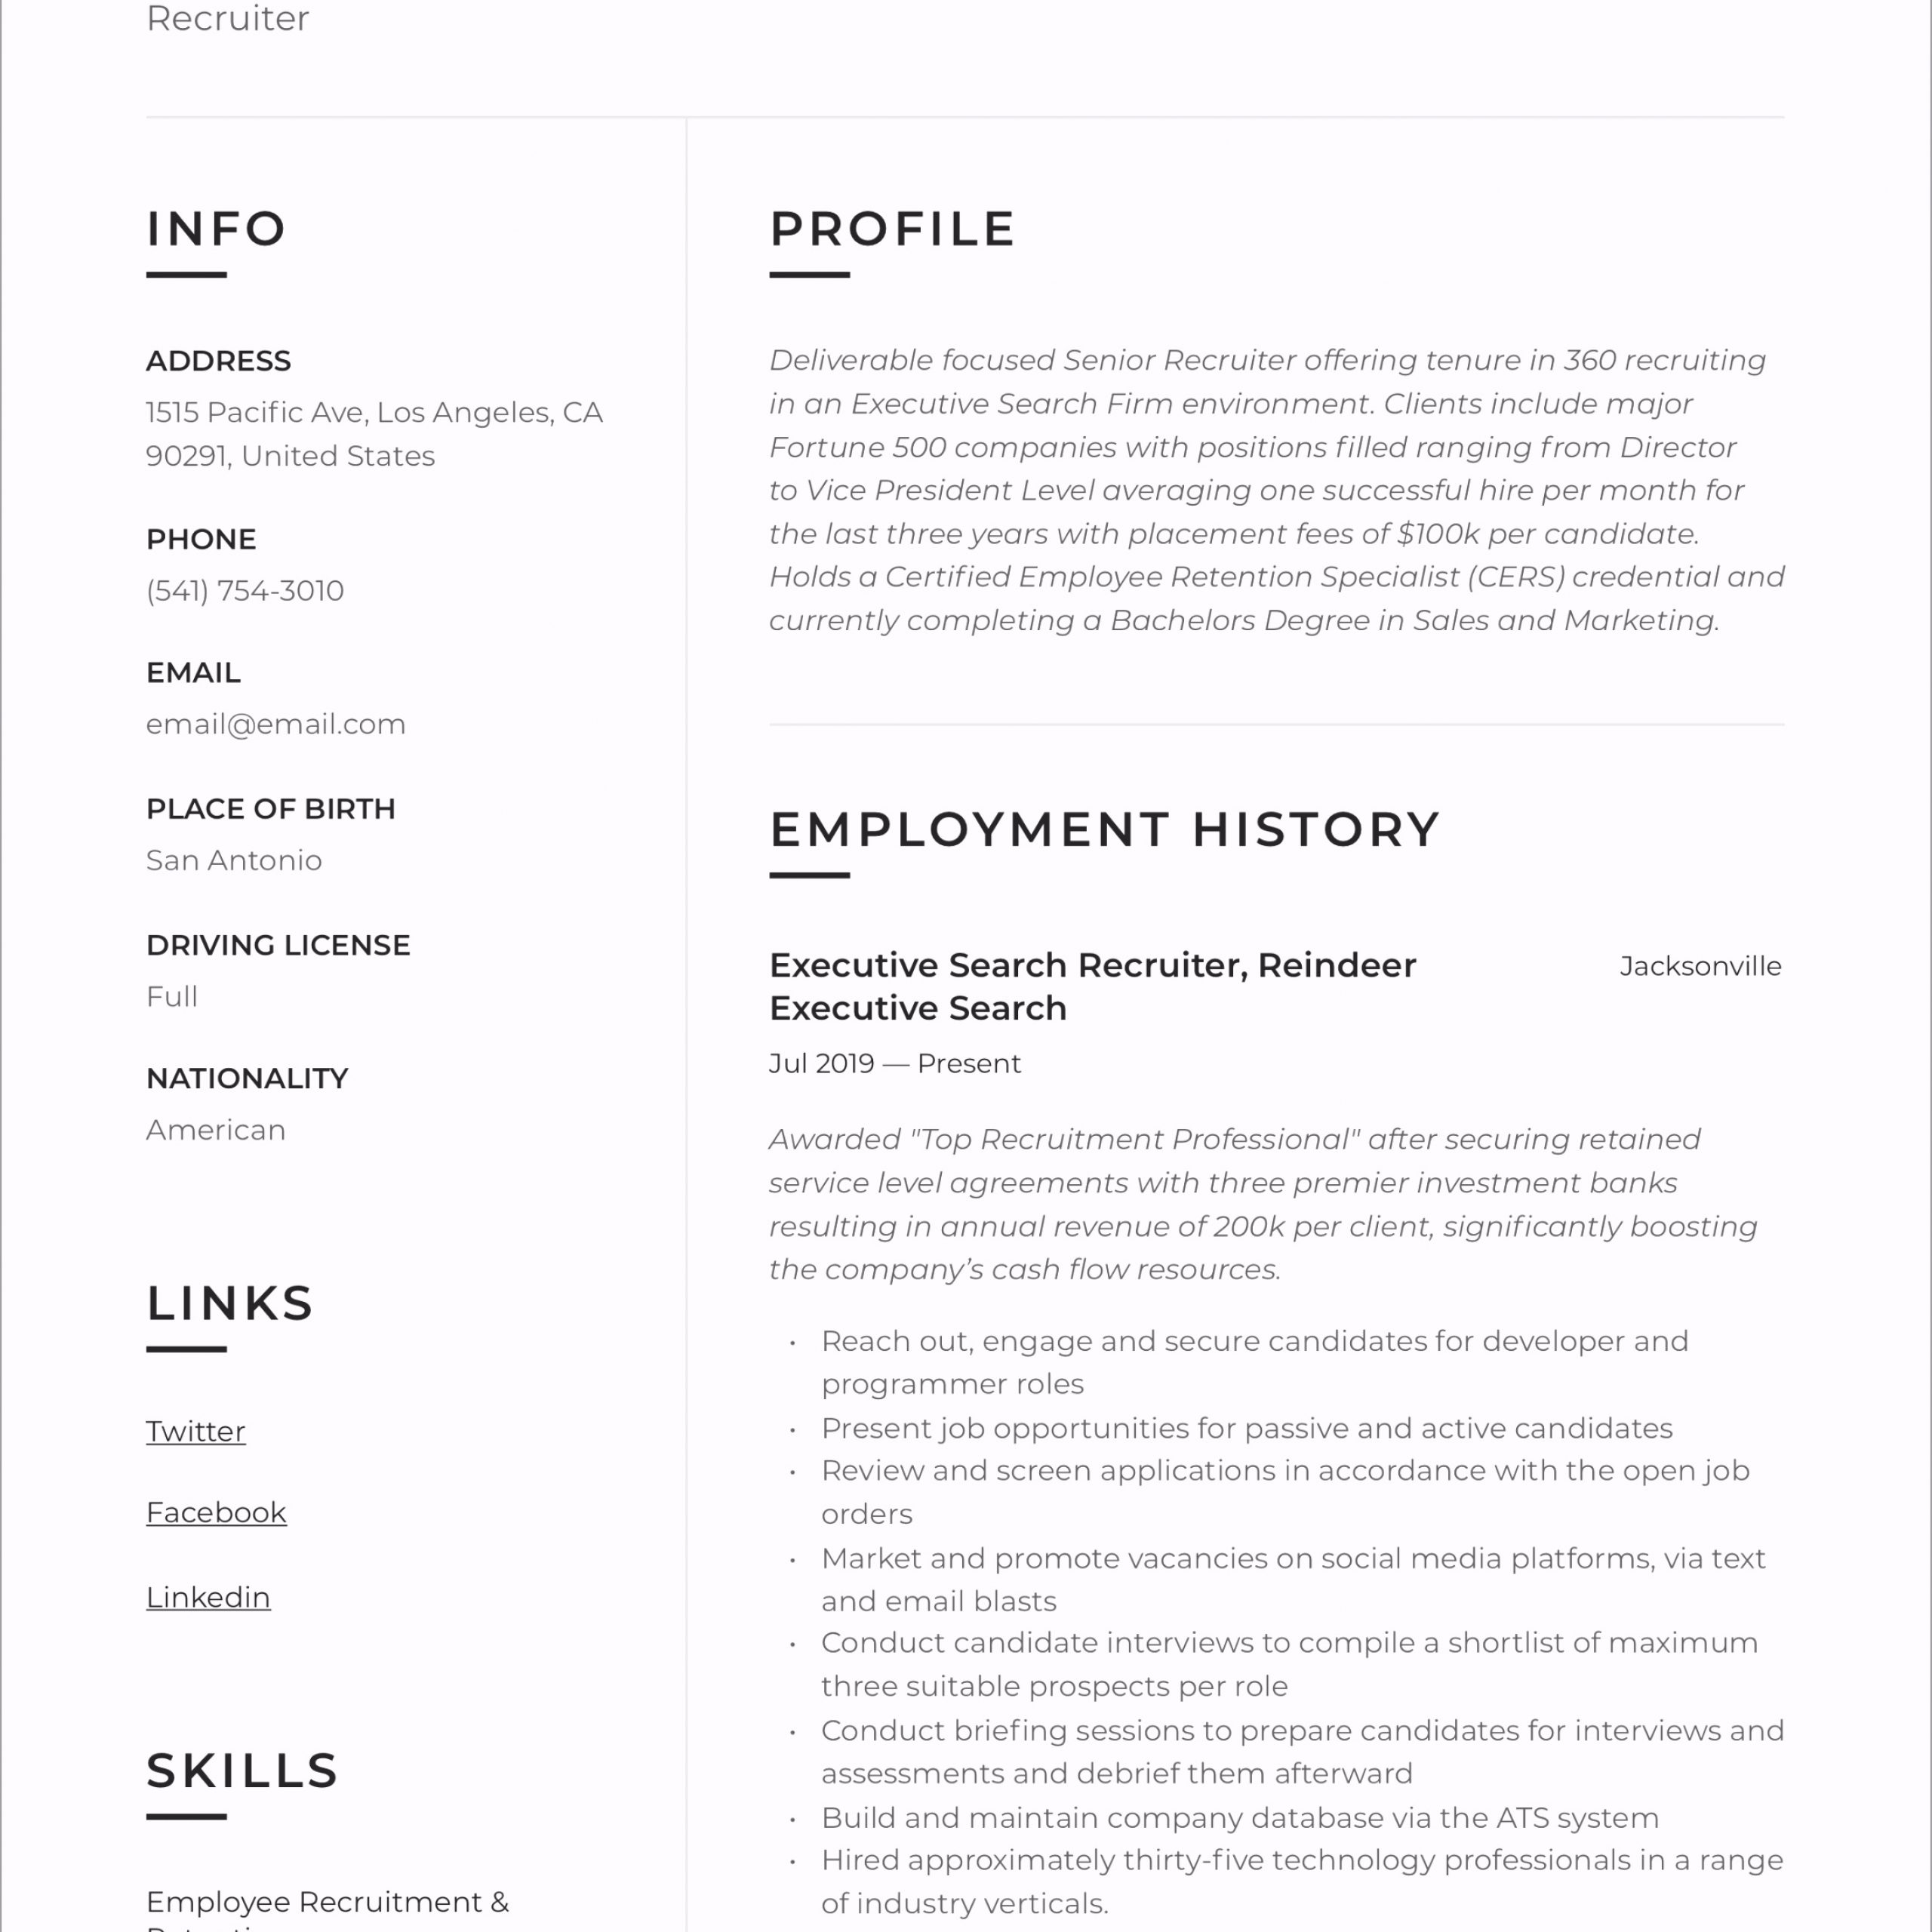 Recruiter Resume 11 riuew